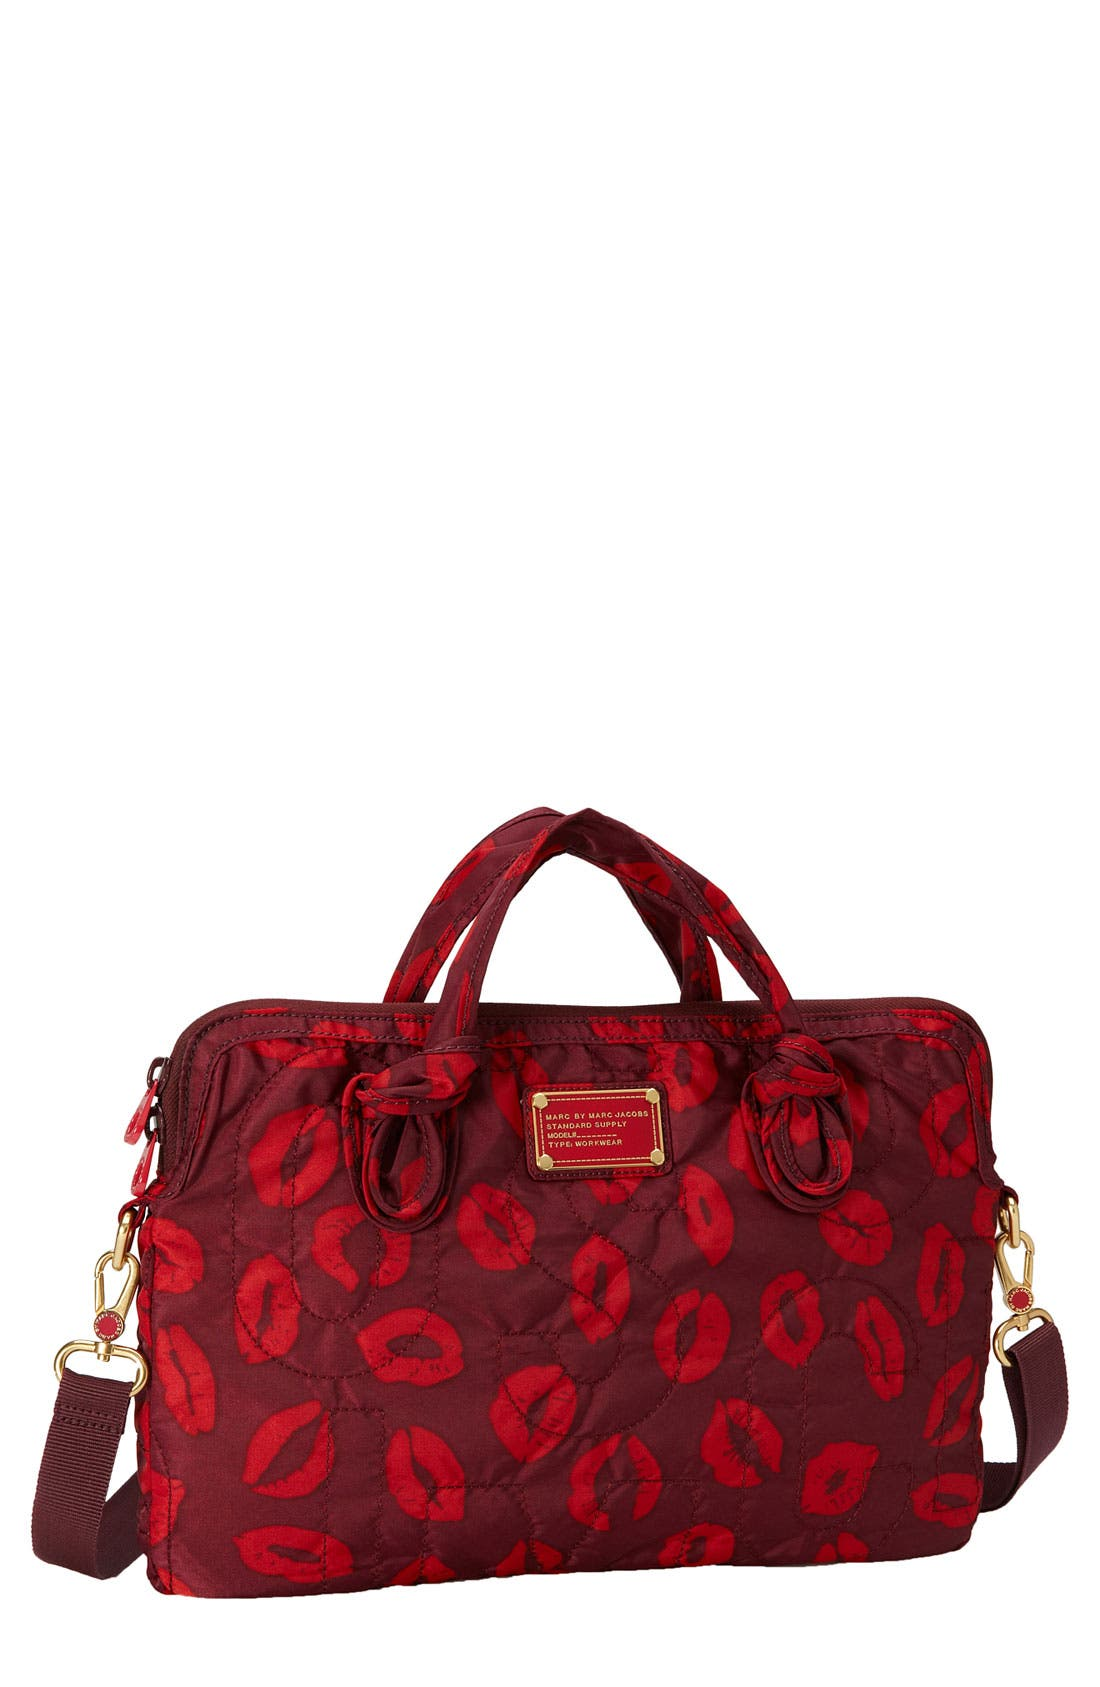 Main Image - MARC BY MARC JACOBS 'Pretty Nylon - Computer Commuter' Bag (15 Inch)